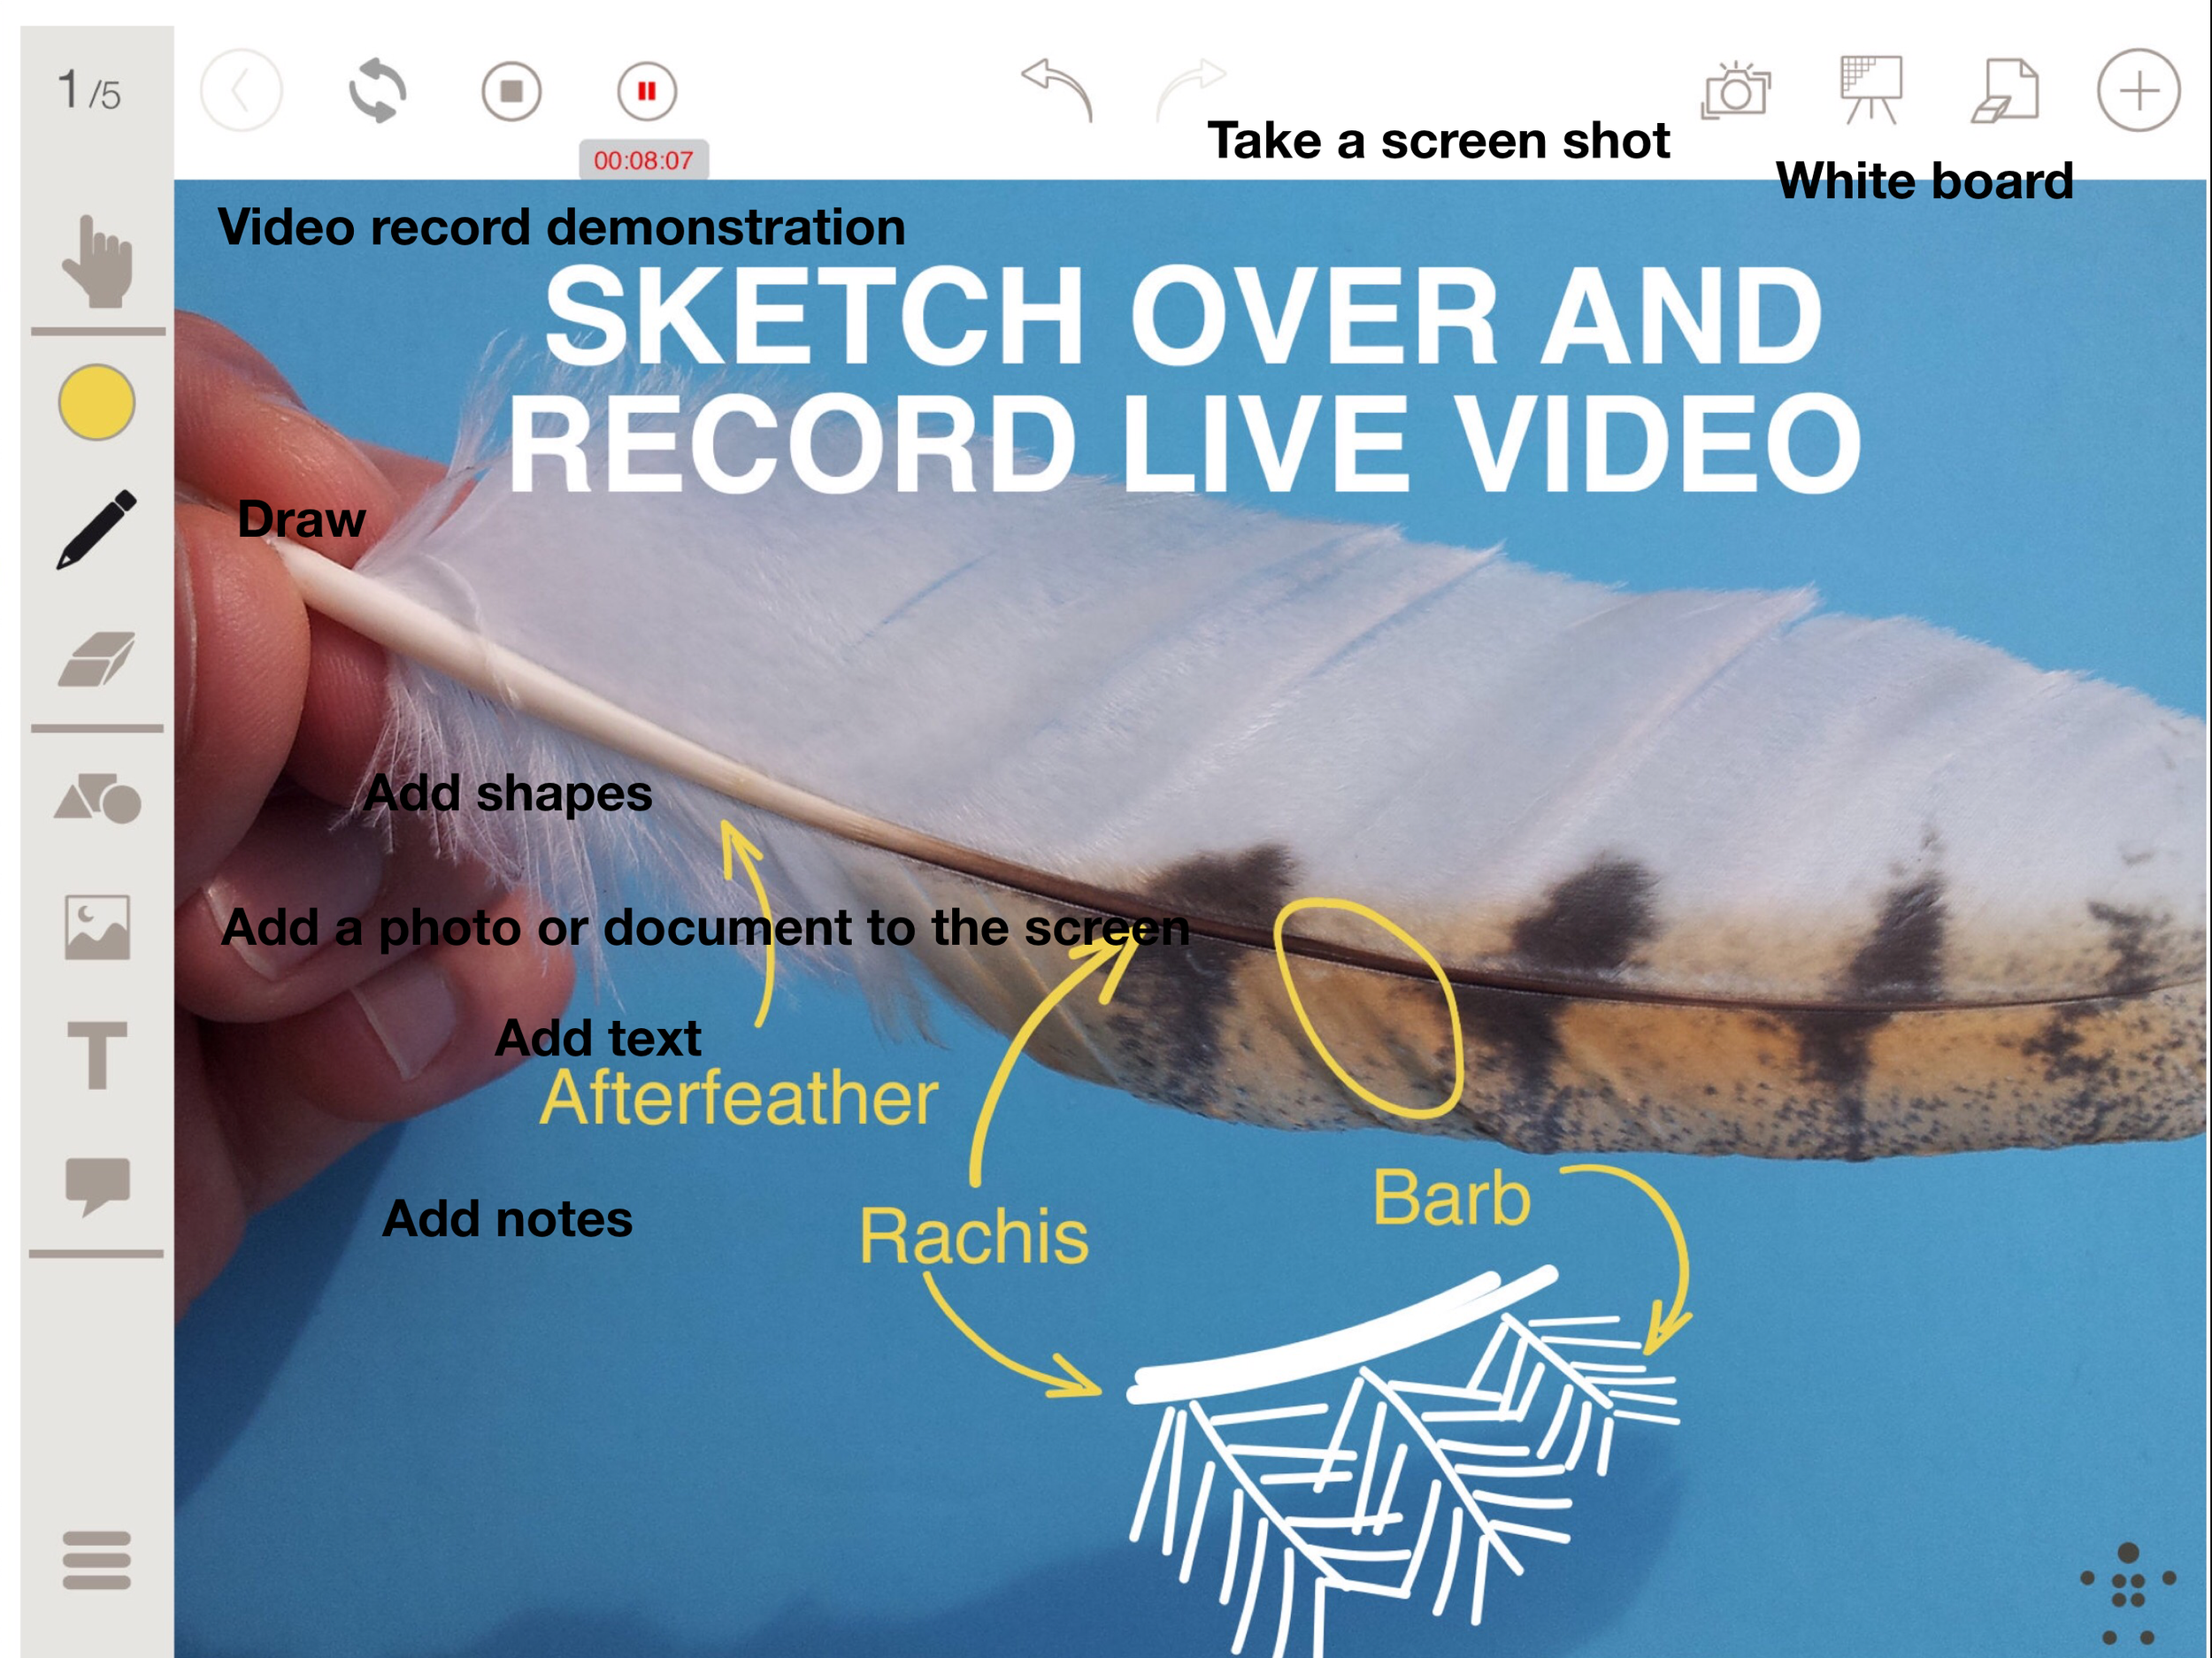 Stage Pro app - This $5.00 app gives you so much more than just a live image.  You can add a document to your screen and use the pen to draw connections between an item and something described in writing.  You can bring up a white board and simply draw on it.  Use your imagination and find ways of connecting your visual content to your audience.